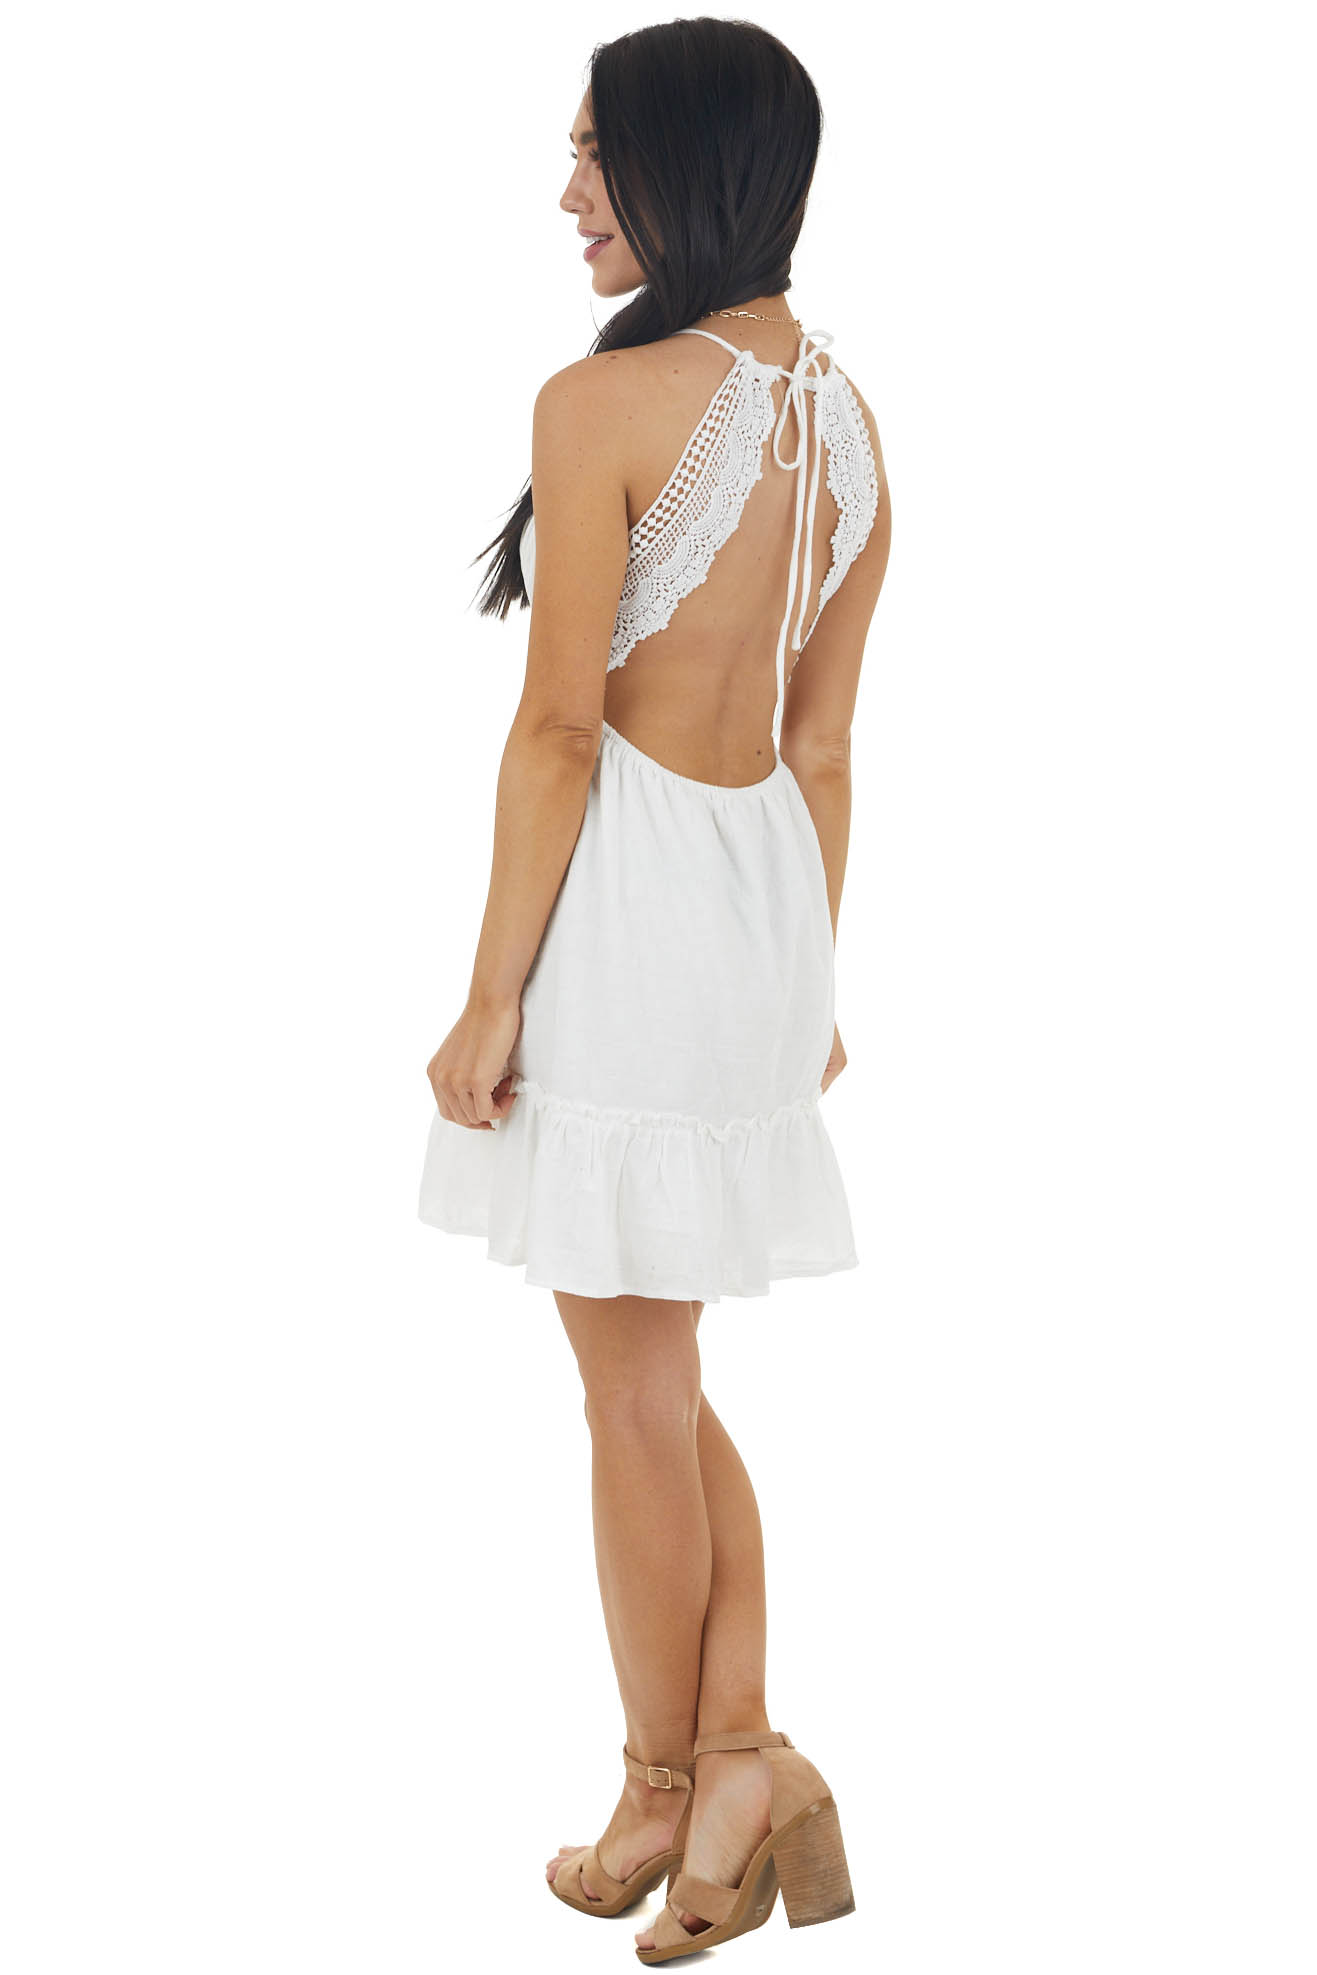 Off White Sleeveless Dress with Crocheted Lace Details